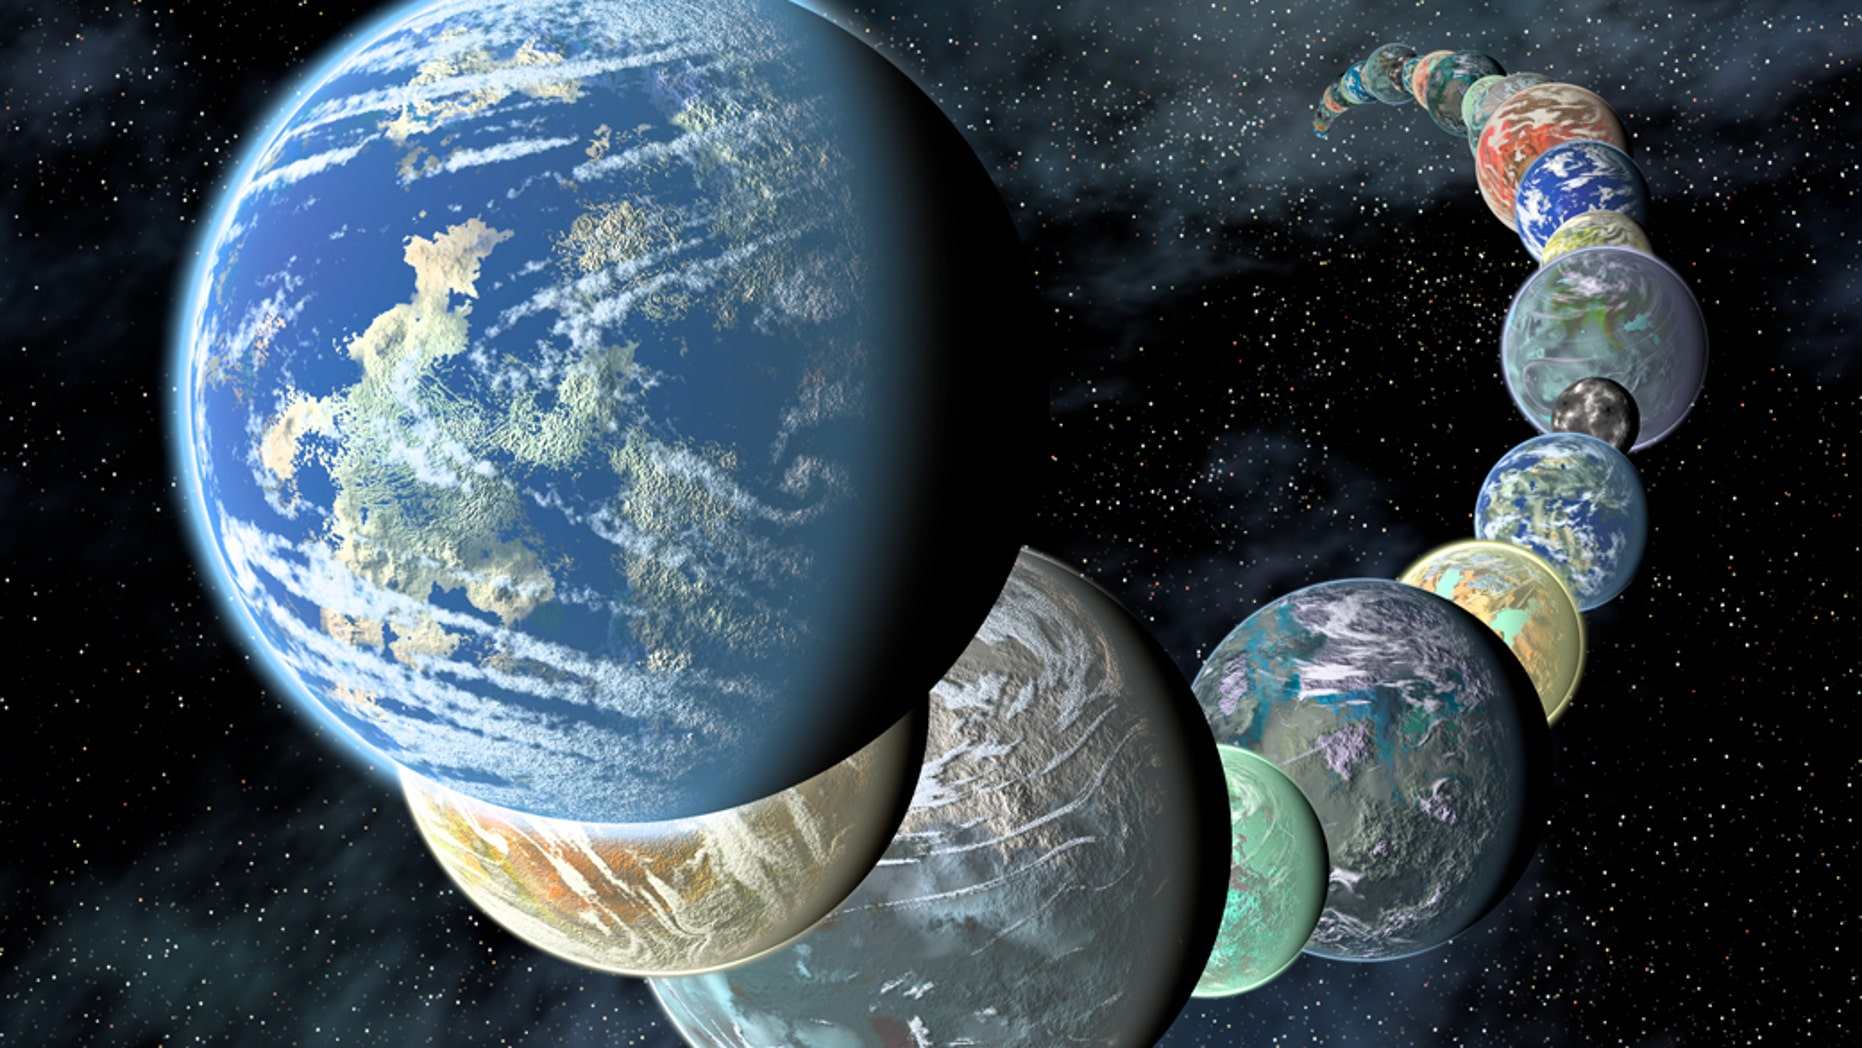 Artist's illustration of how rocky, potentially habitable worlds elsewhere in our galaxy might appear. Data gathered by telescopes in space and on the ground suggest that small, rocky planets are common. (Placing them so close together in a line is for illustrative purposes only.)